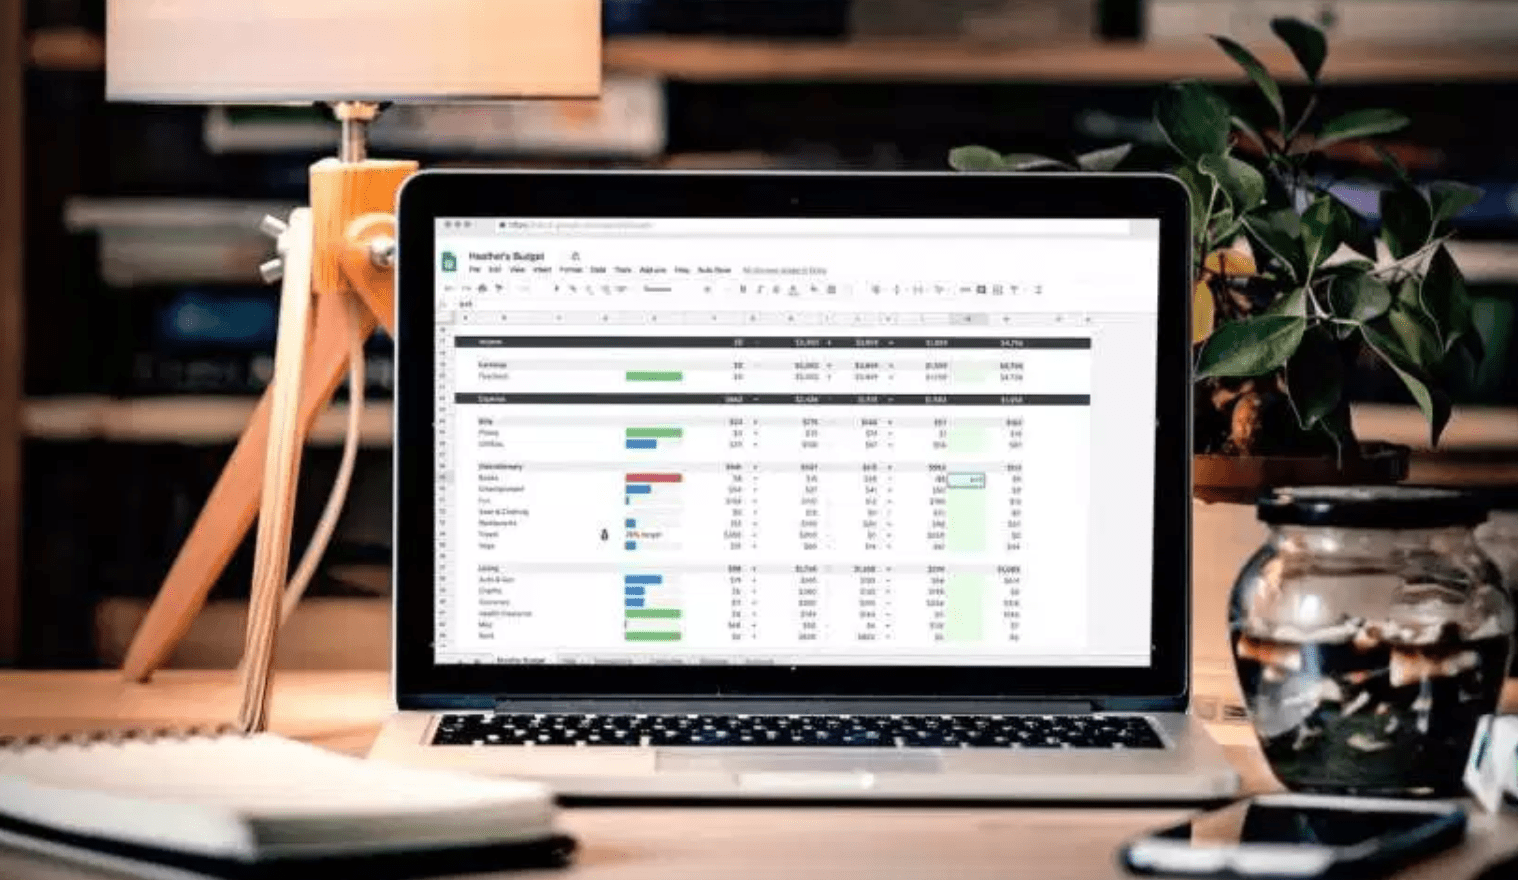 How To Properly Create A Work Budget Spreadsheet in Microsoft Excel